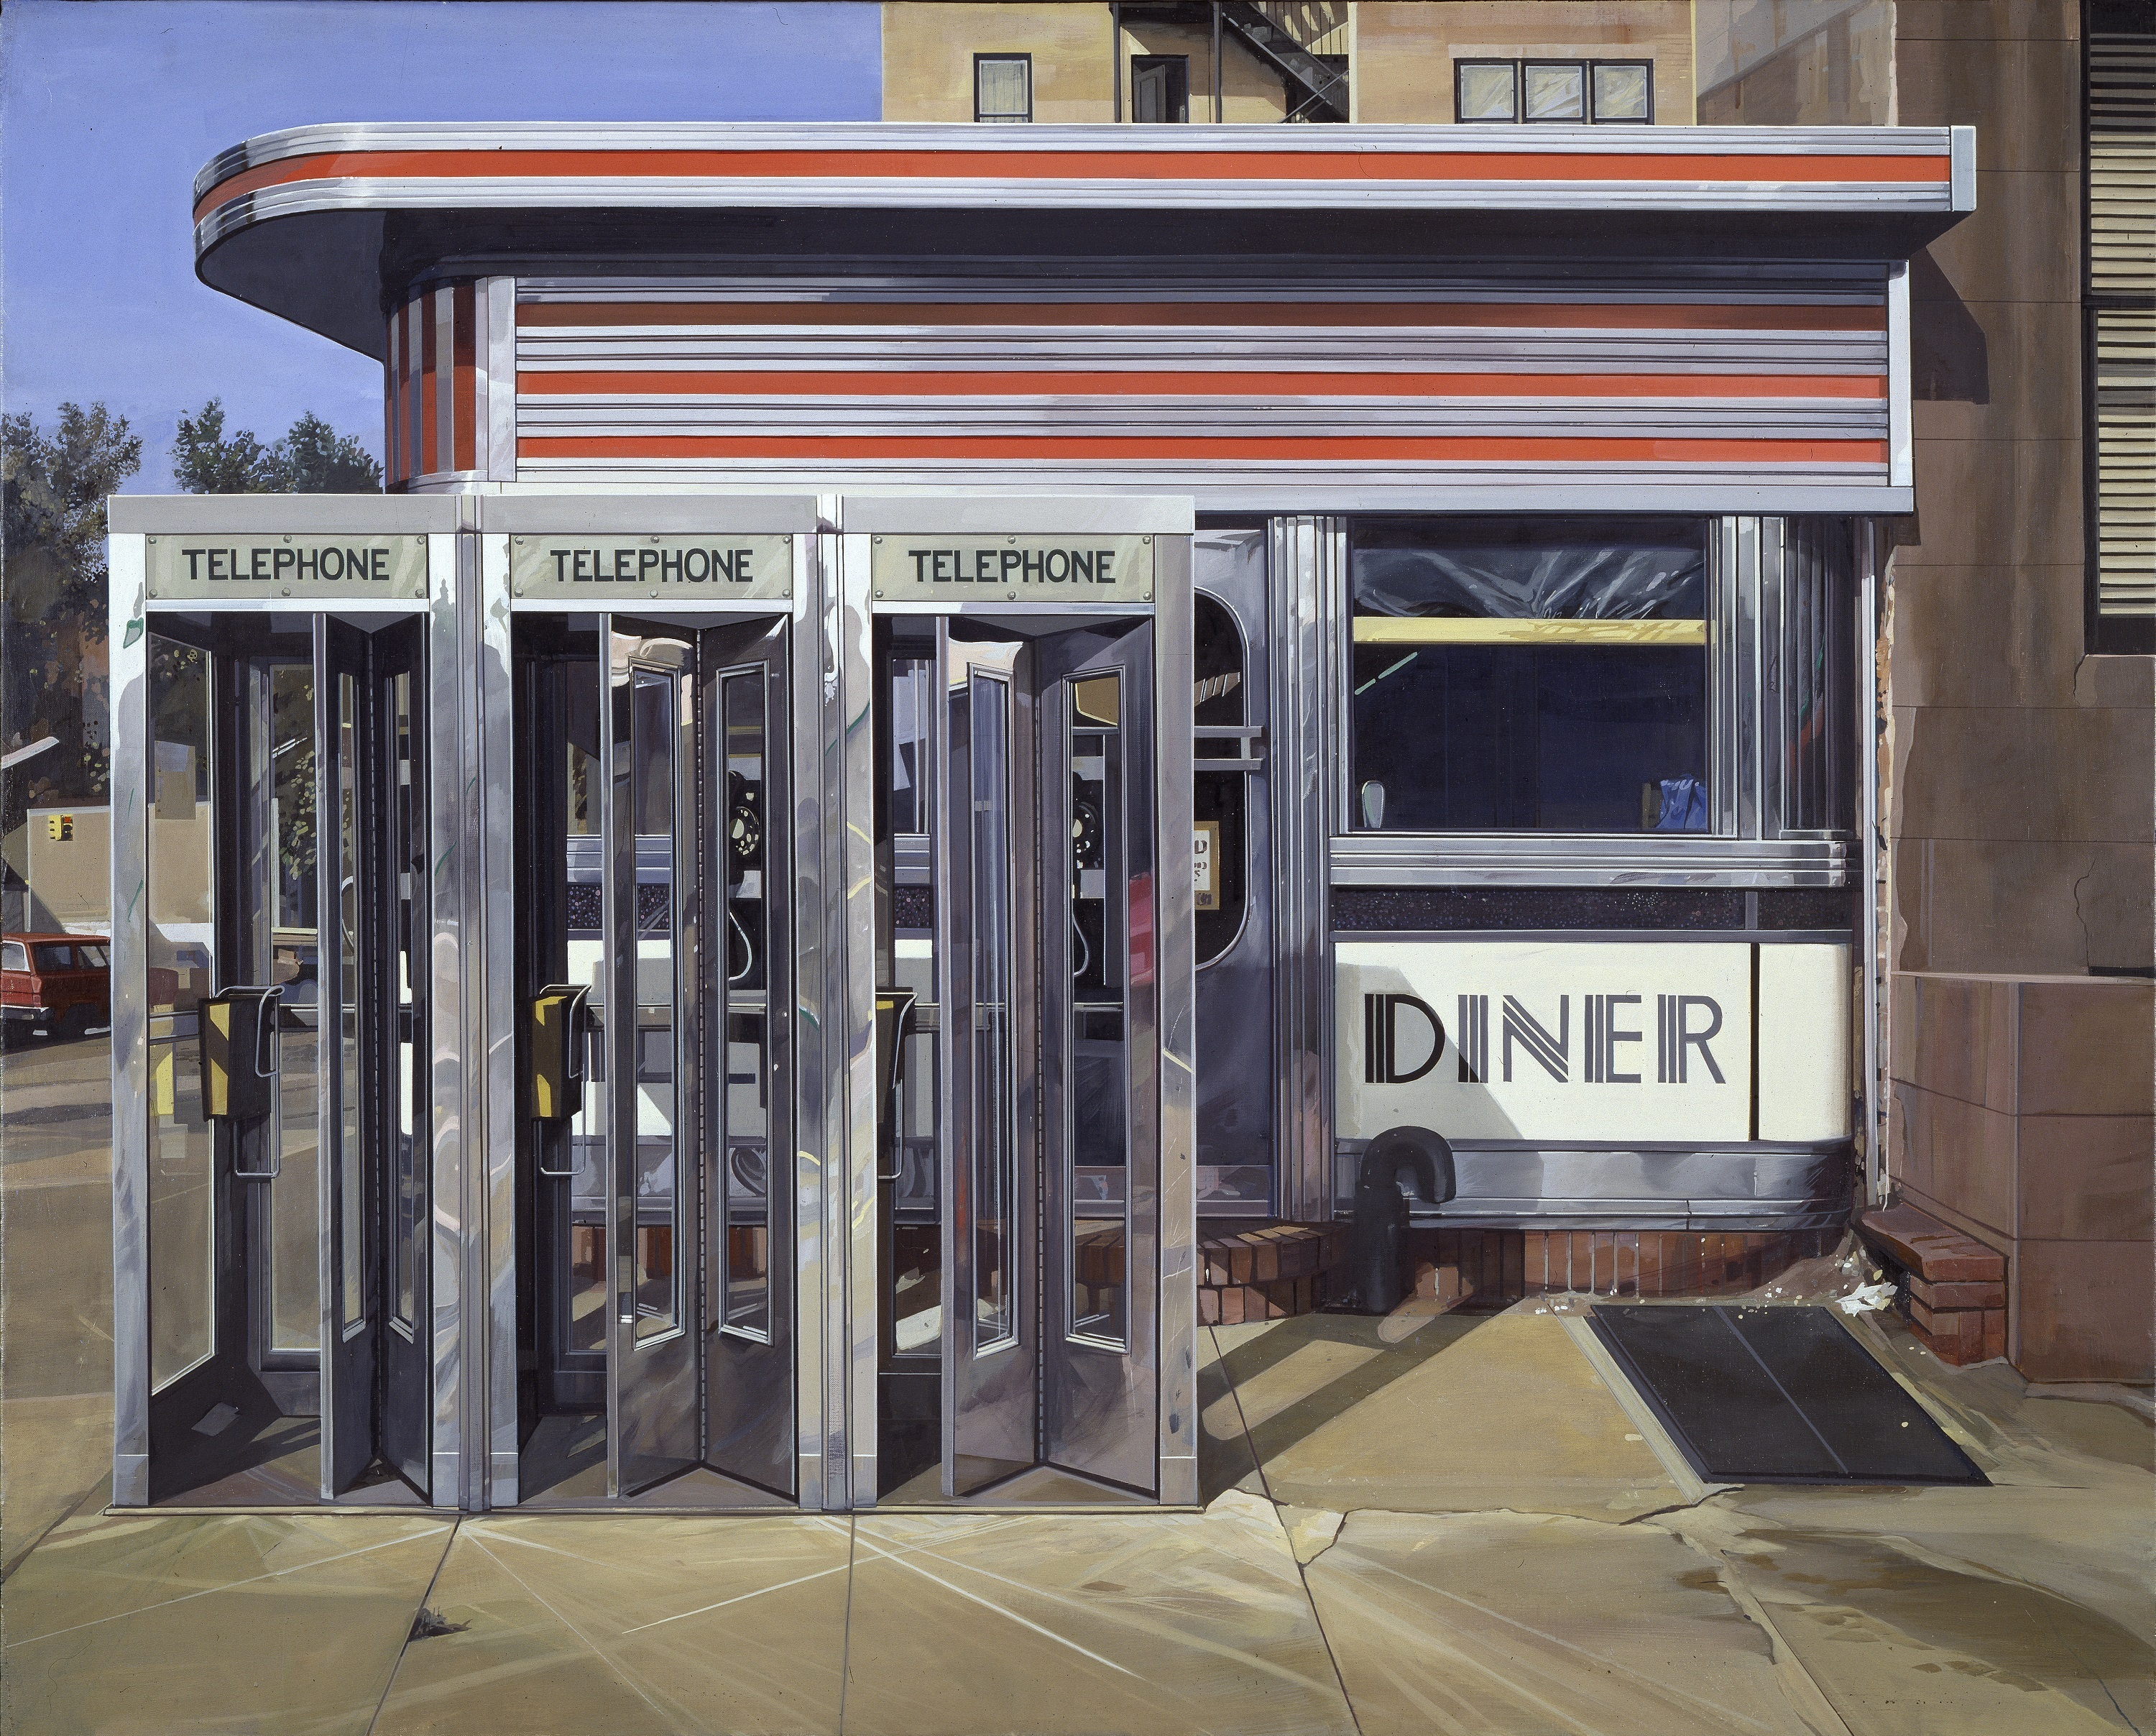 Painting or photograph with richard estes it 39 s hard to for Diner artwork